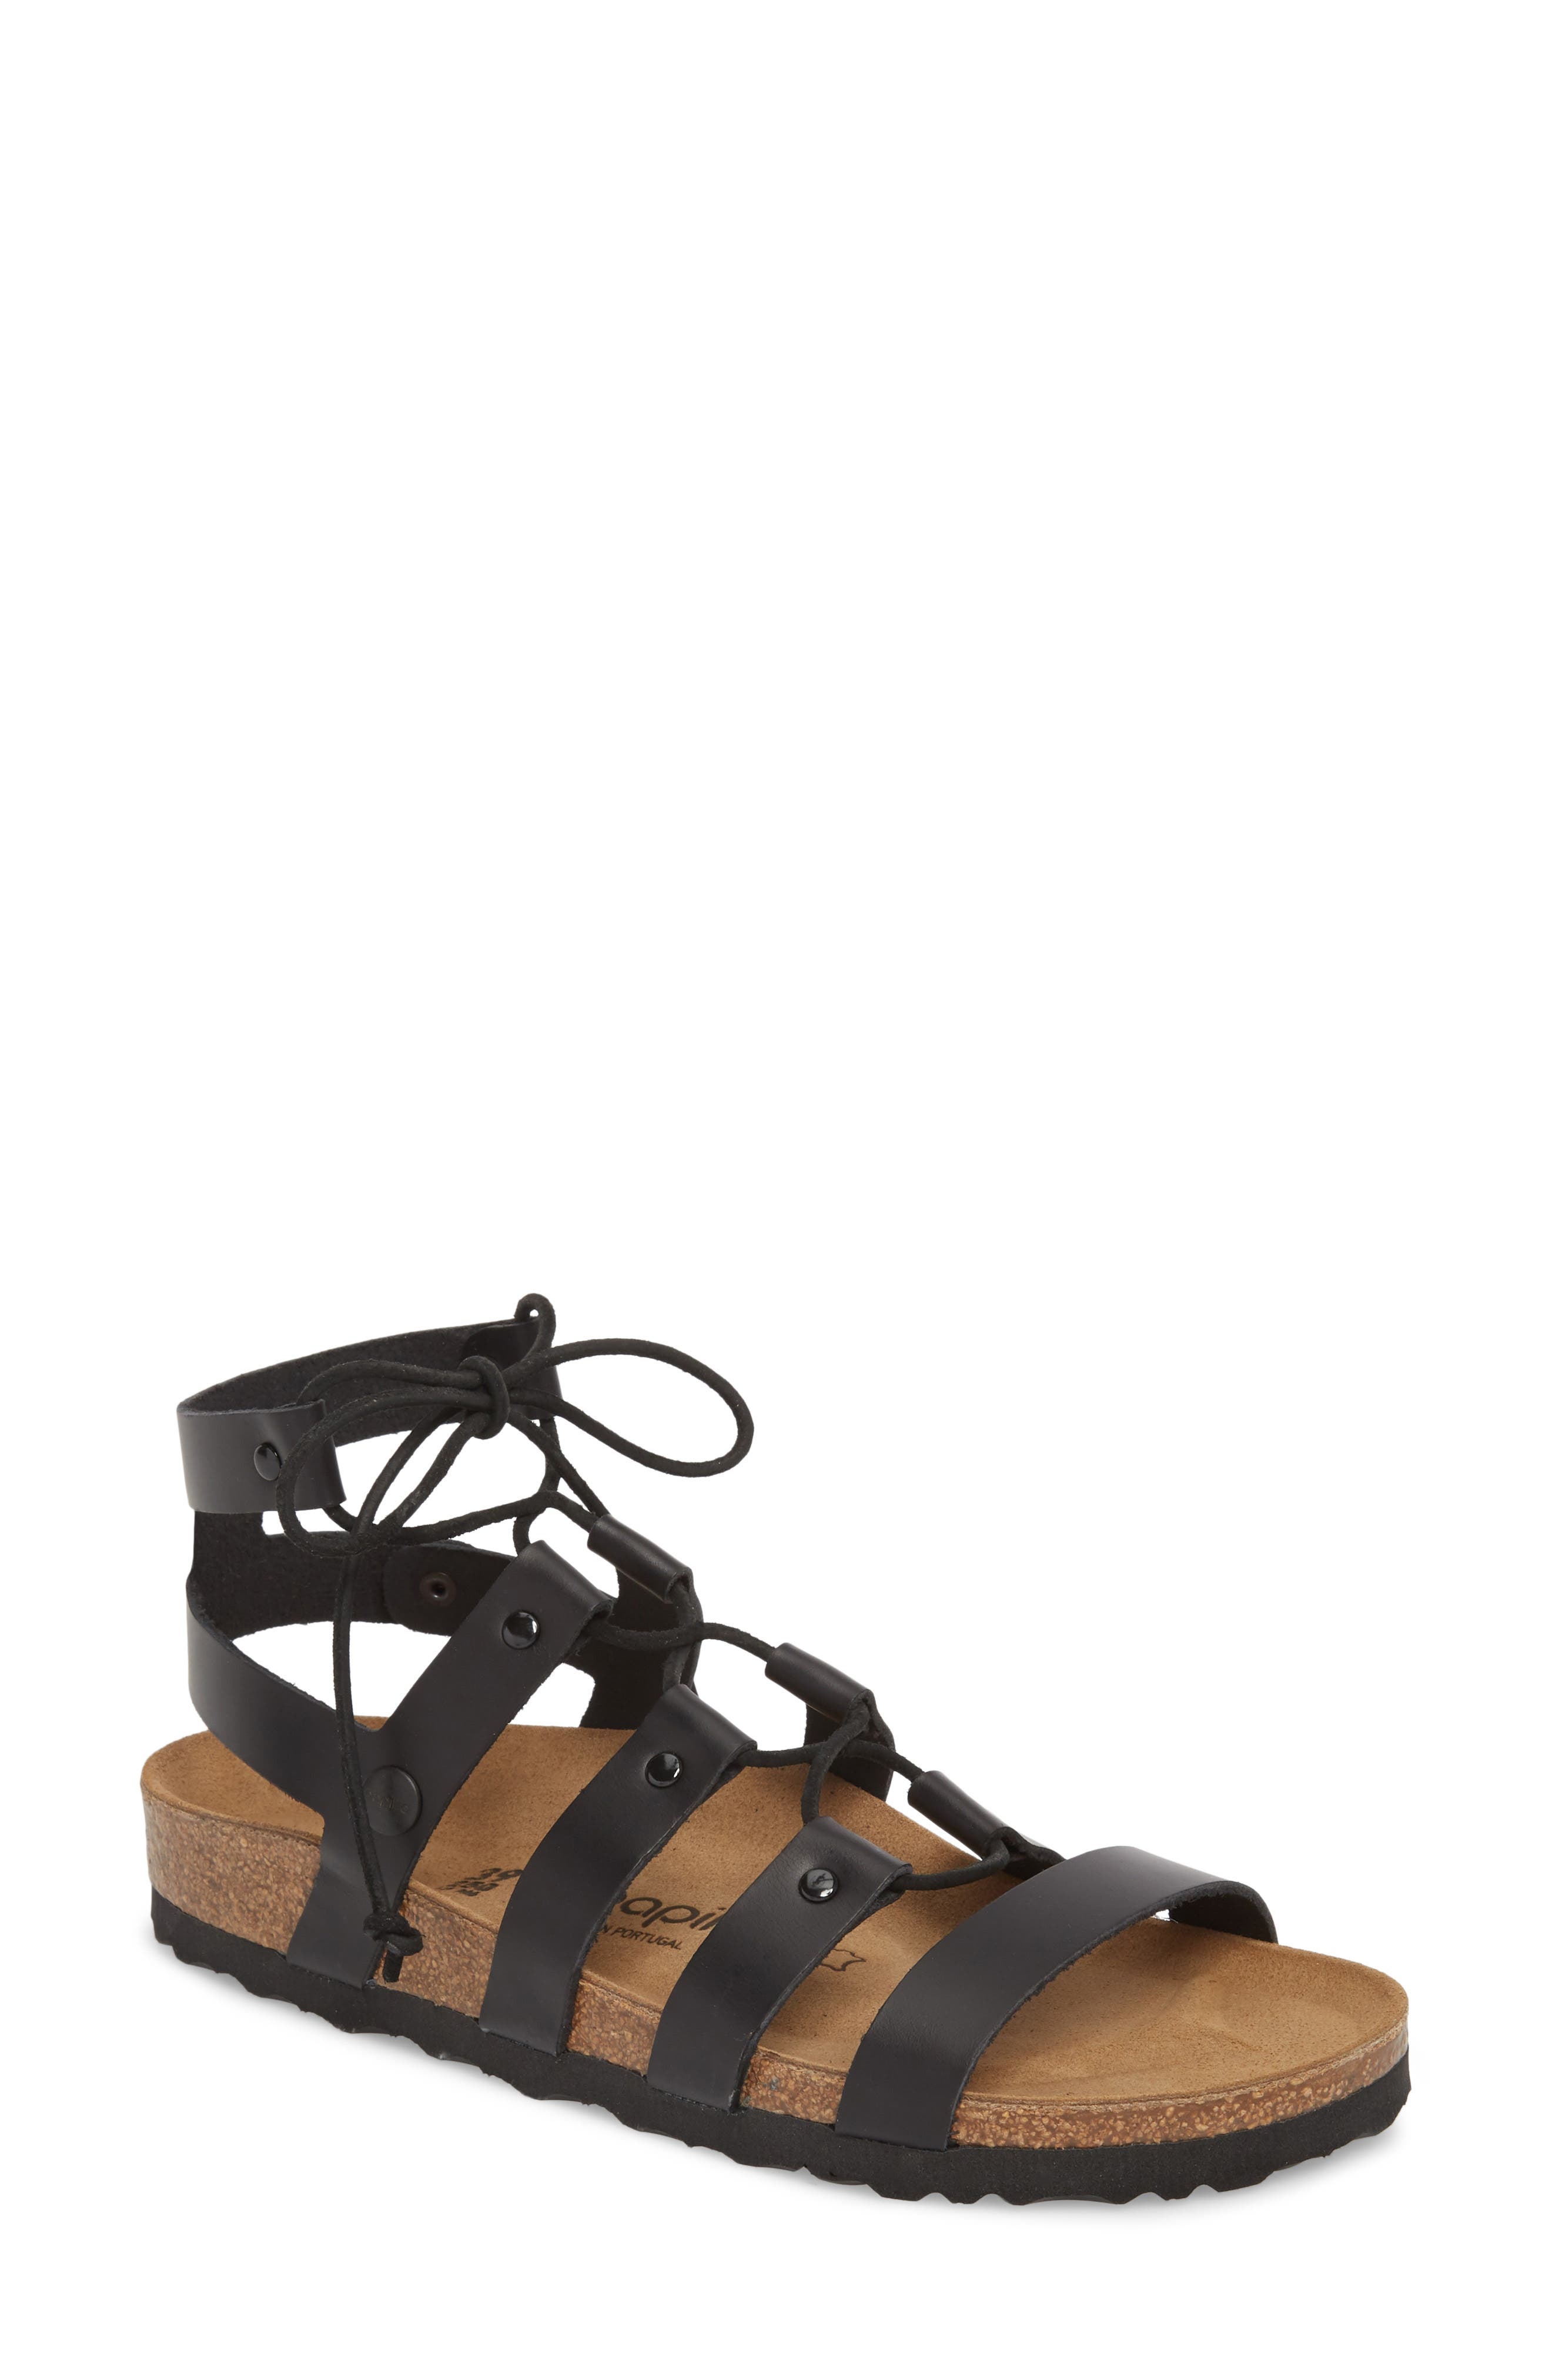 Papillio by Birkenstock Cleo Gladiator Sandal,                             Main thumbnail 1, color,                             001